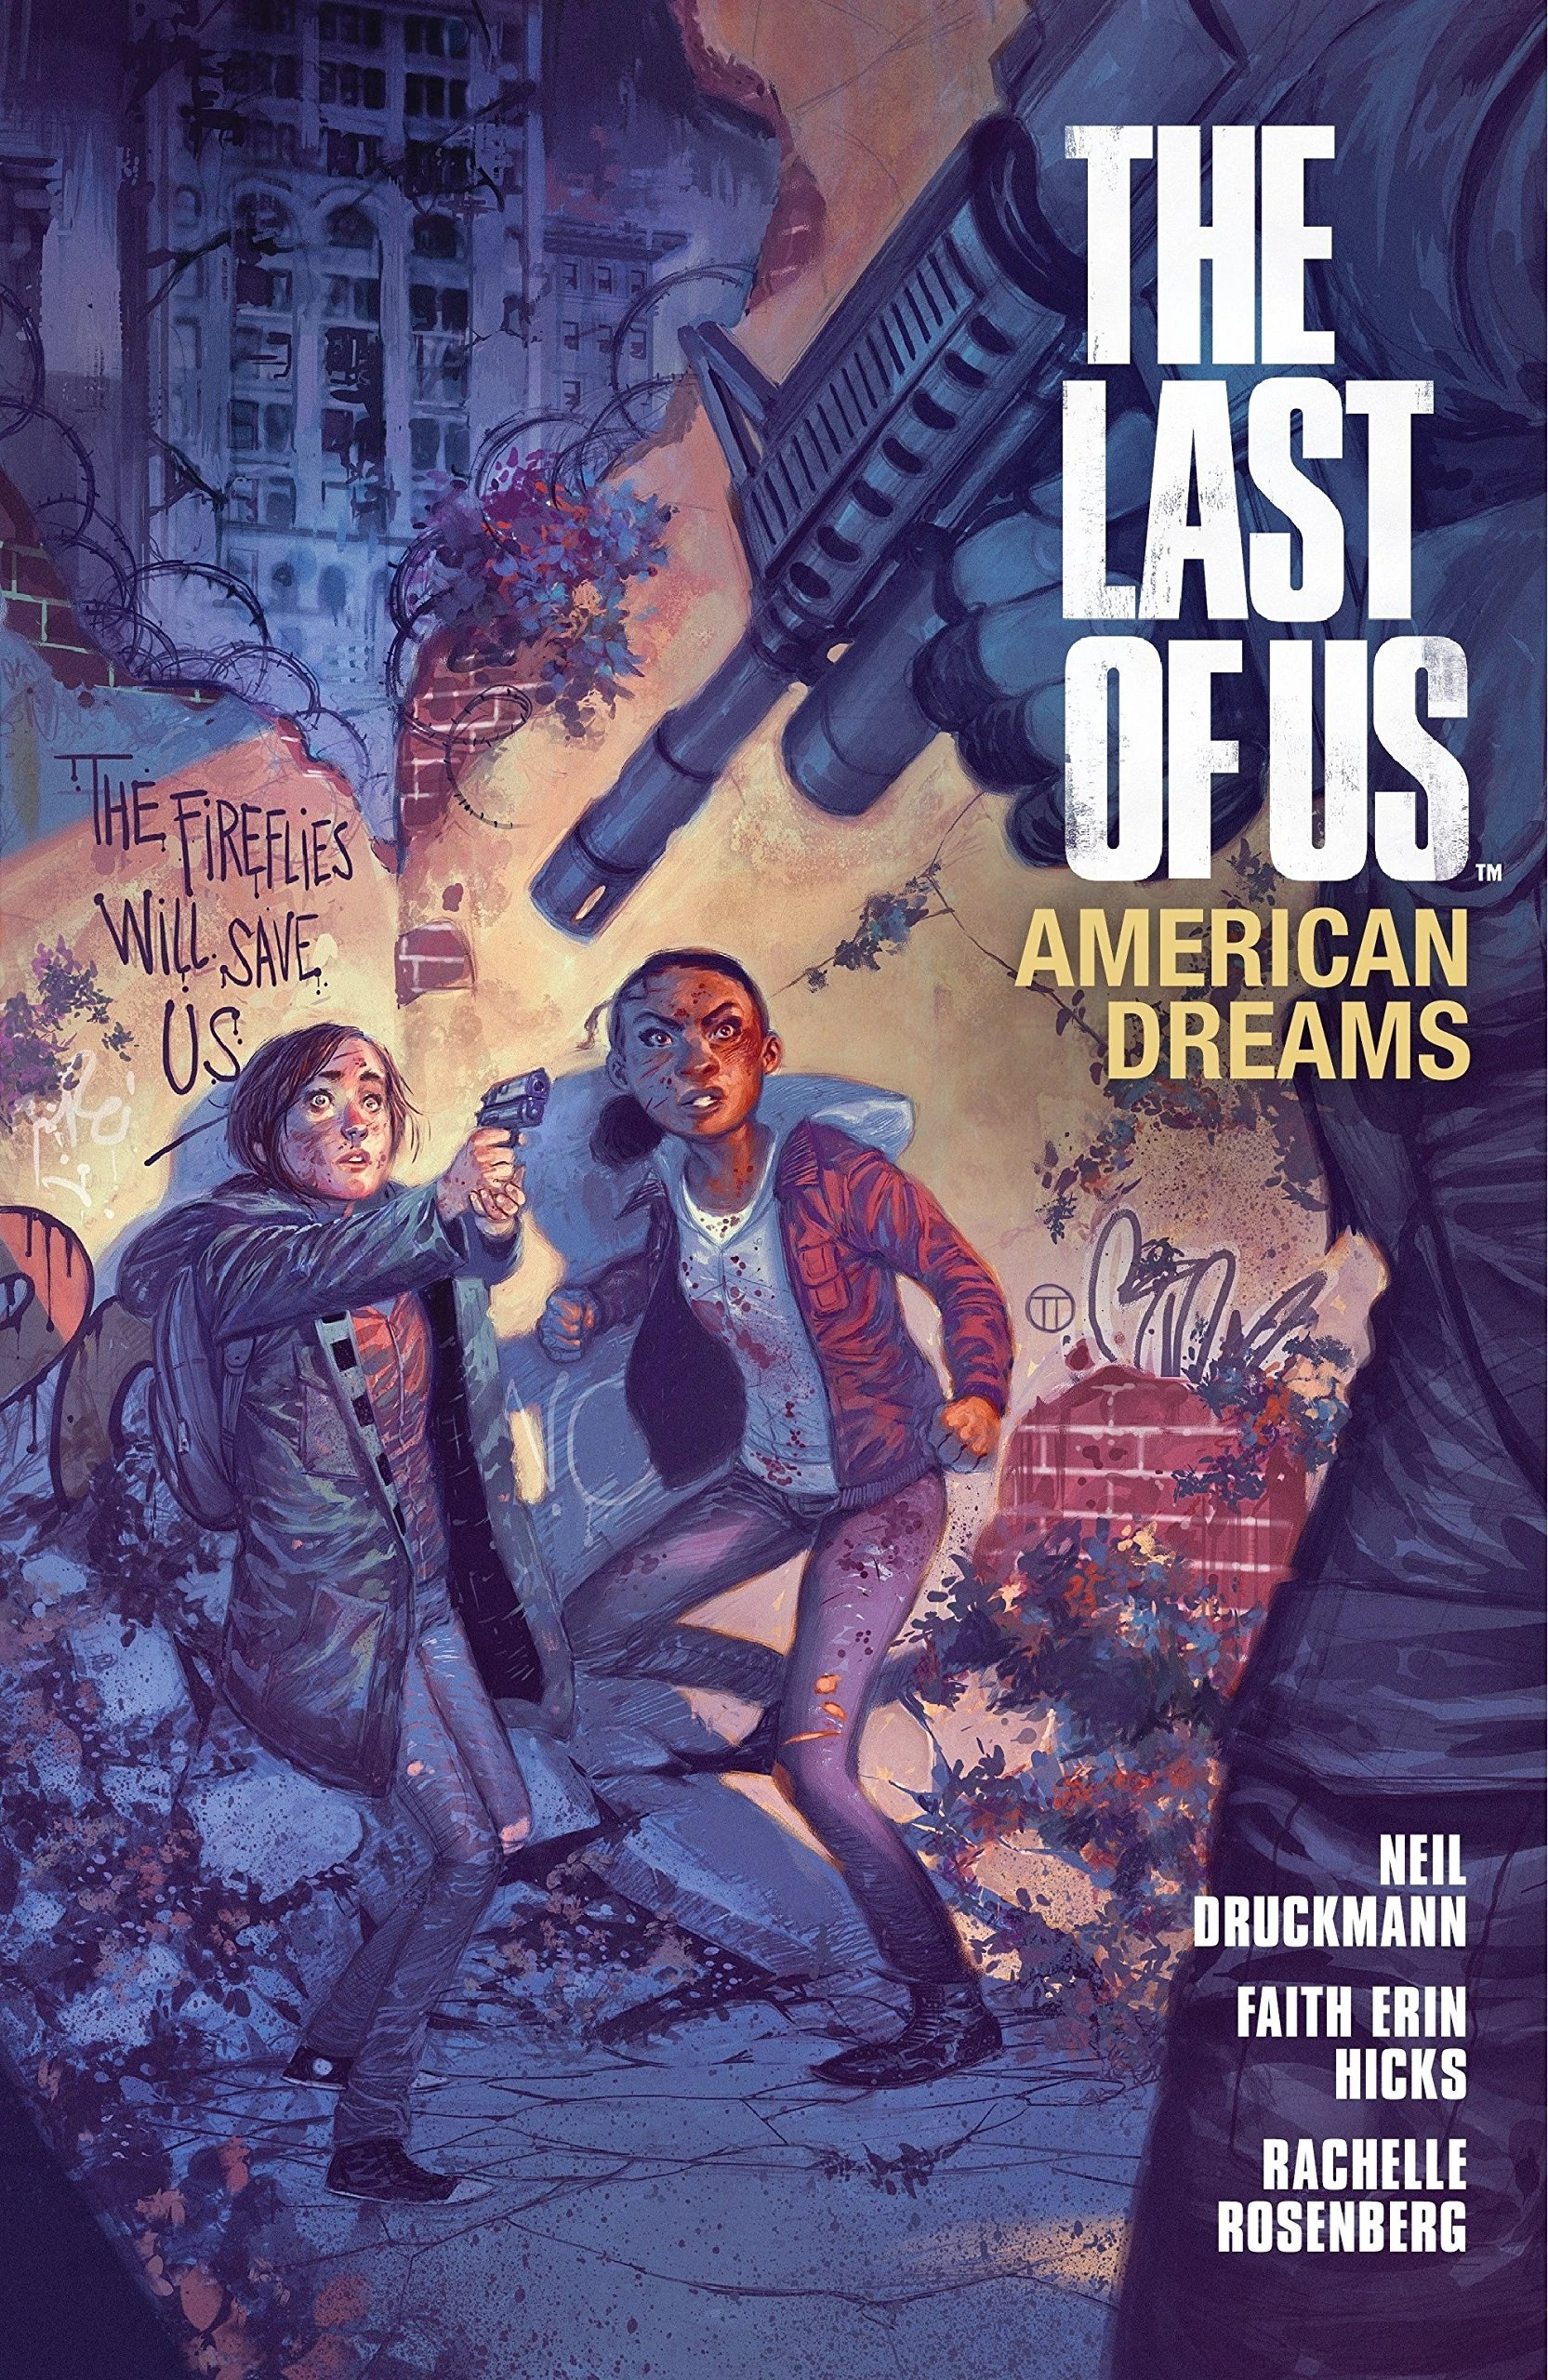 https://i1.wp.com/images1.wikia.nocookie.net/__cb20130610025337/thelastofus/images/a/a4/American_Dreams_TPB_Cover.jpg